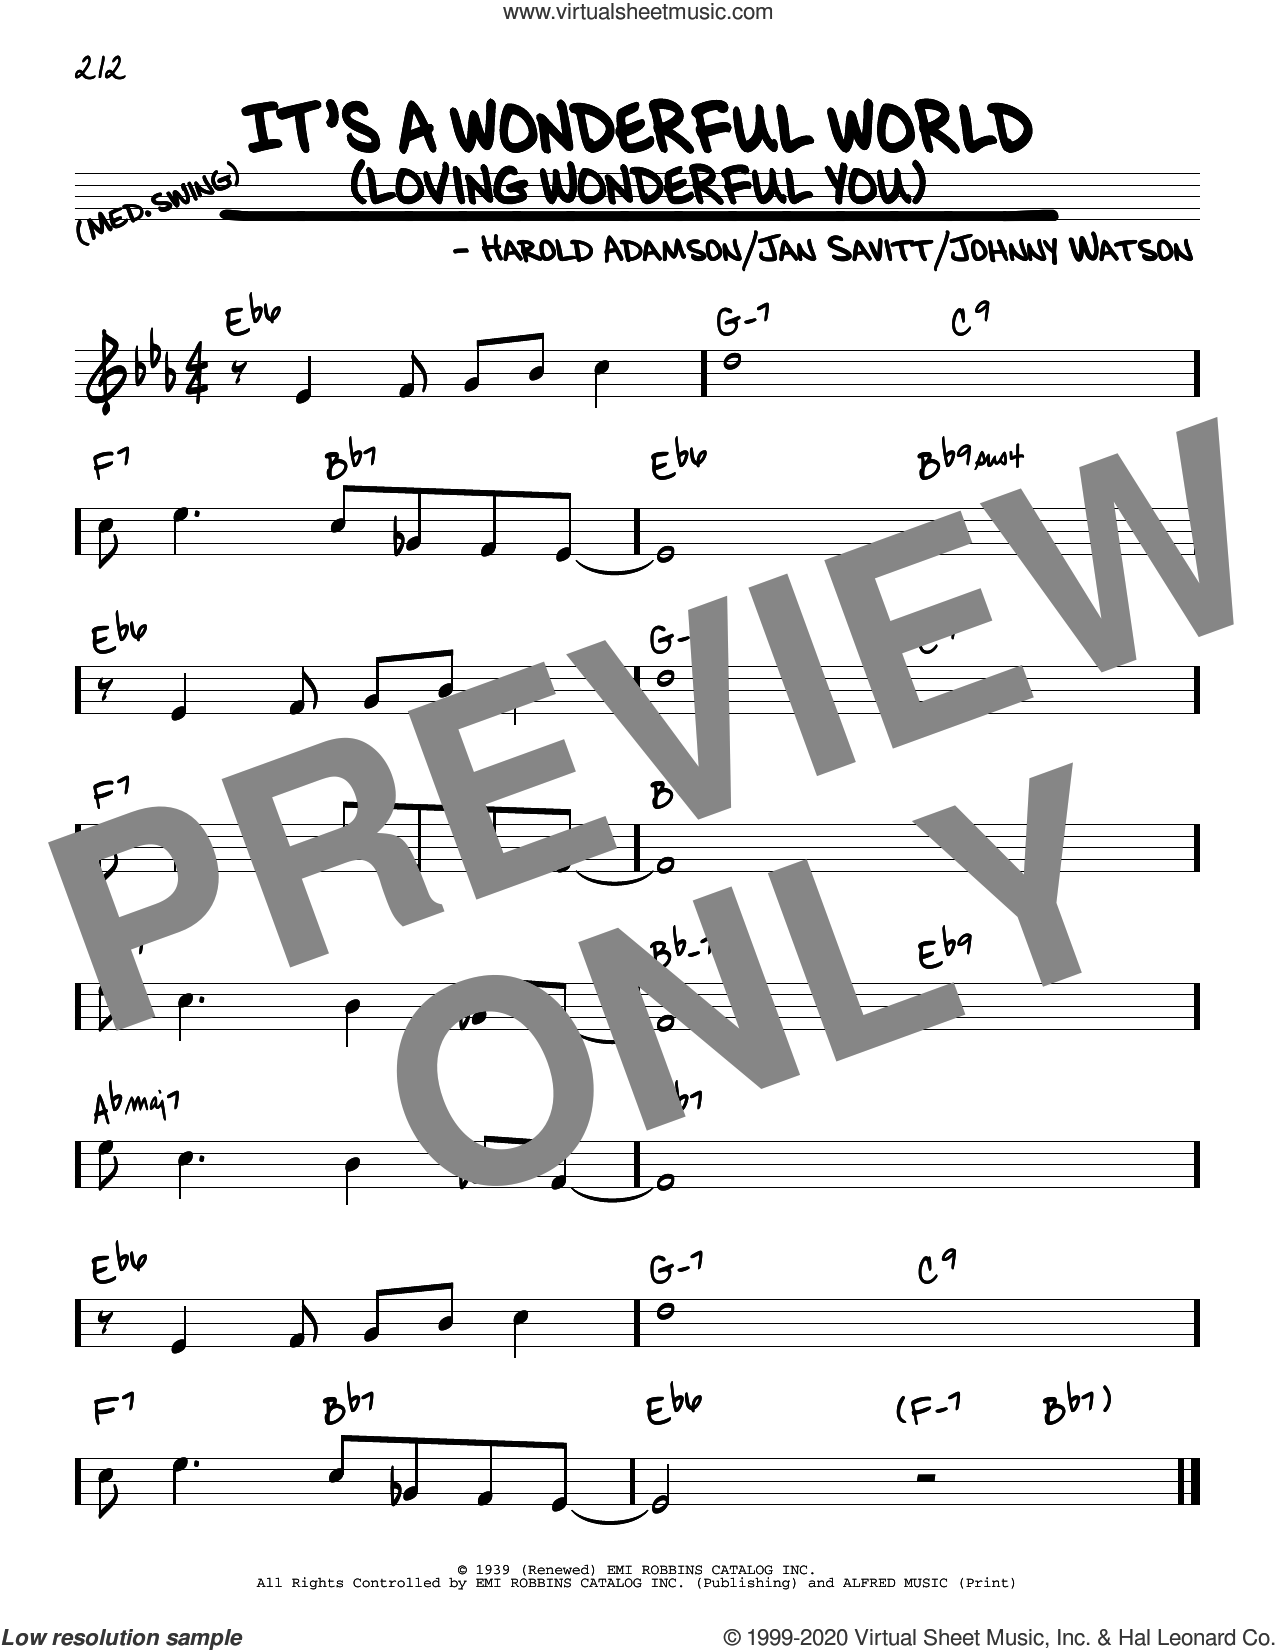 It's A Wonderful World (Loving Wonderful You) sheet music for voice and other instruments (real book) by Frank Sinatra, Harold Adamson, Jan Savitt and Johnny Watson, intermediate skill level